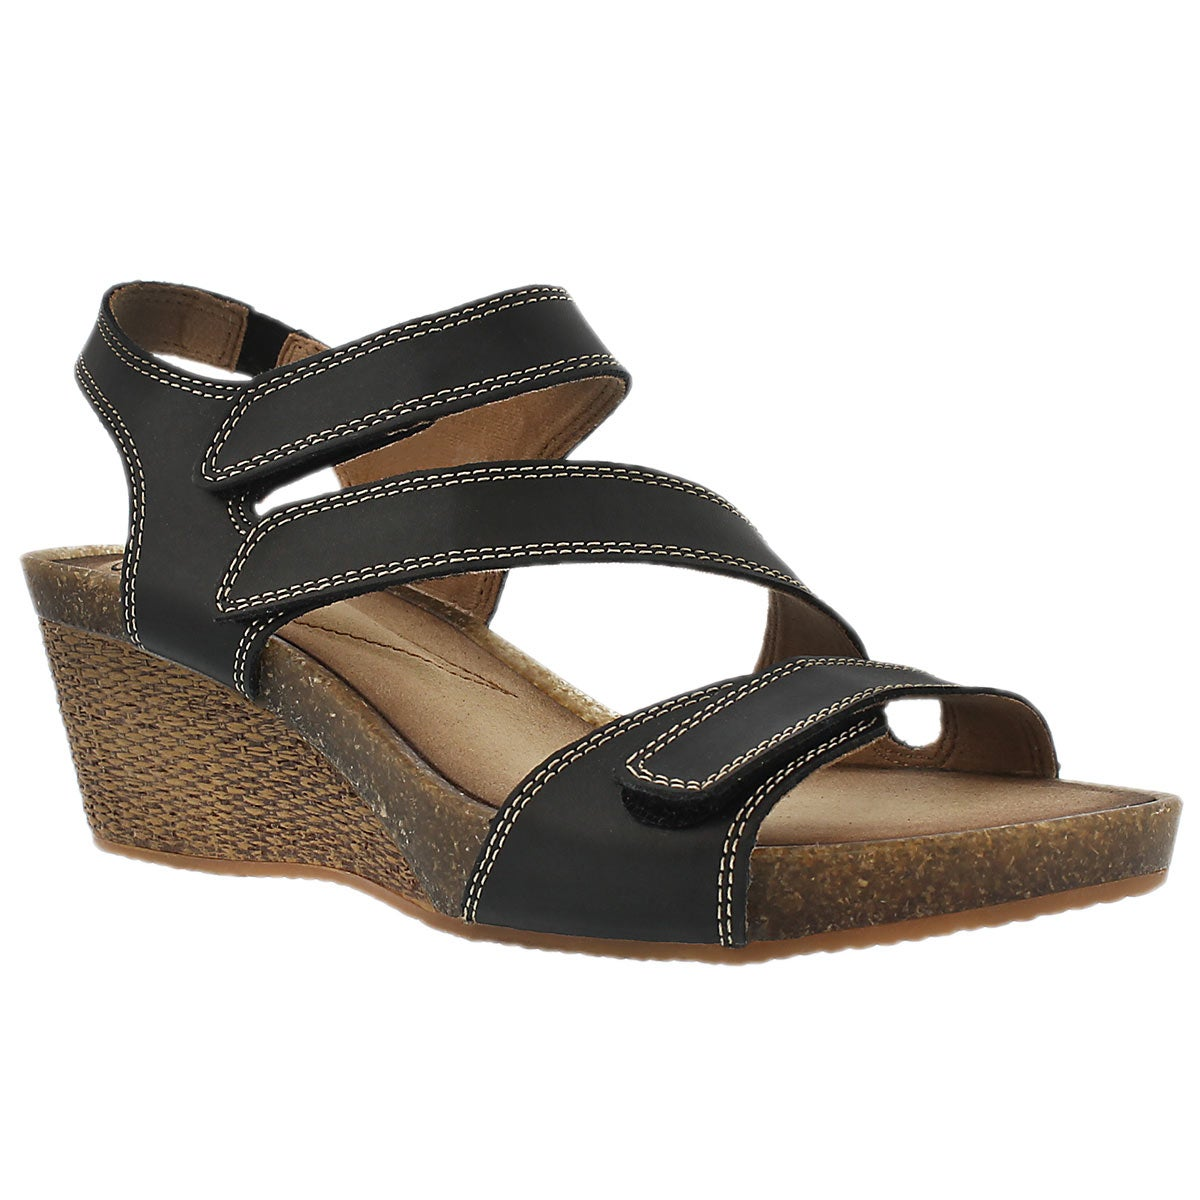 Women's HAVELY ORDO black wedge sandals